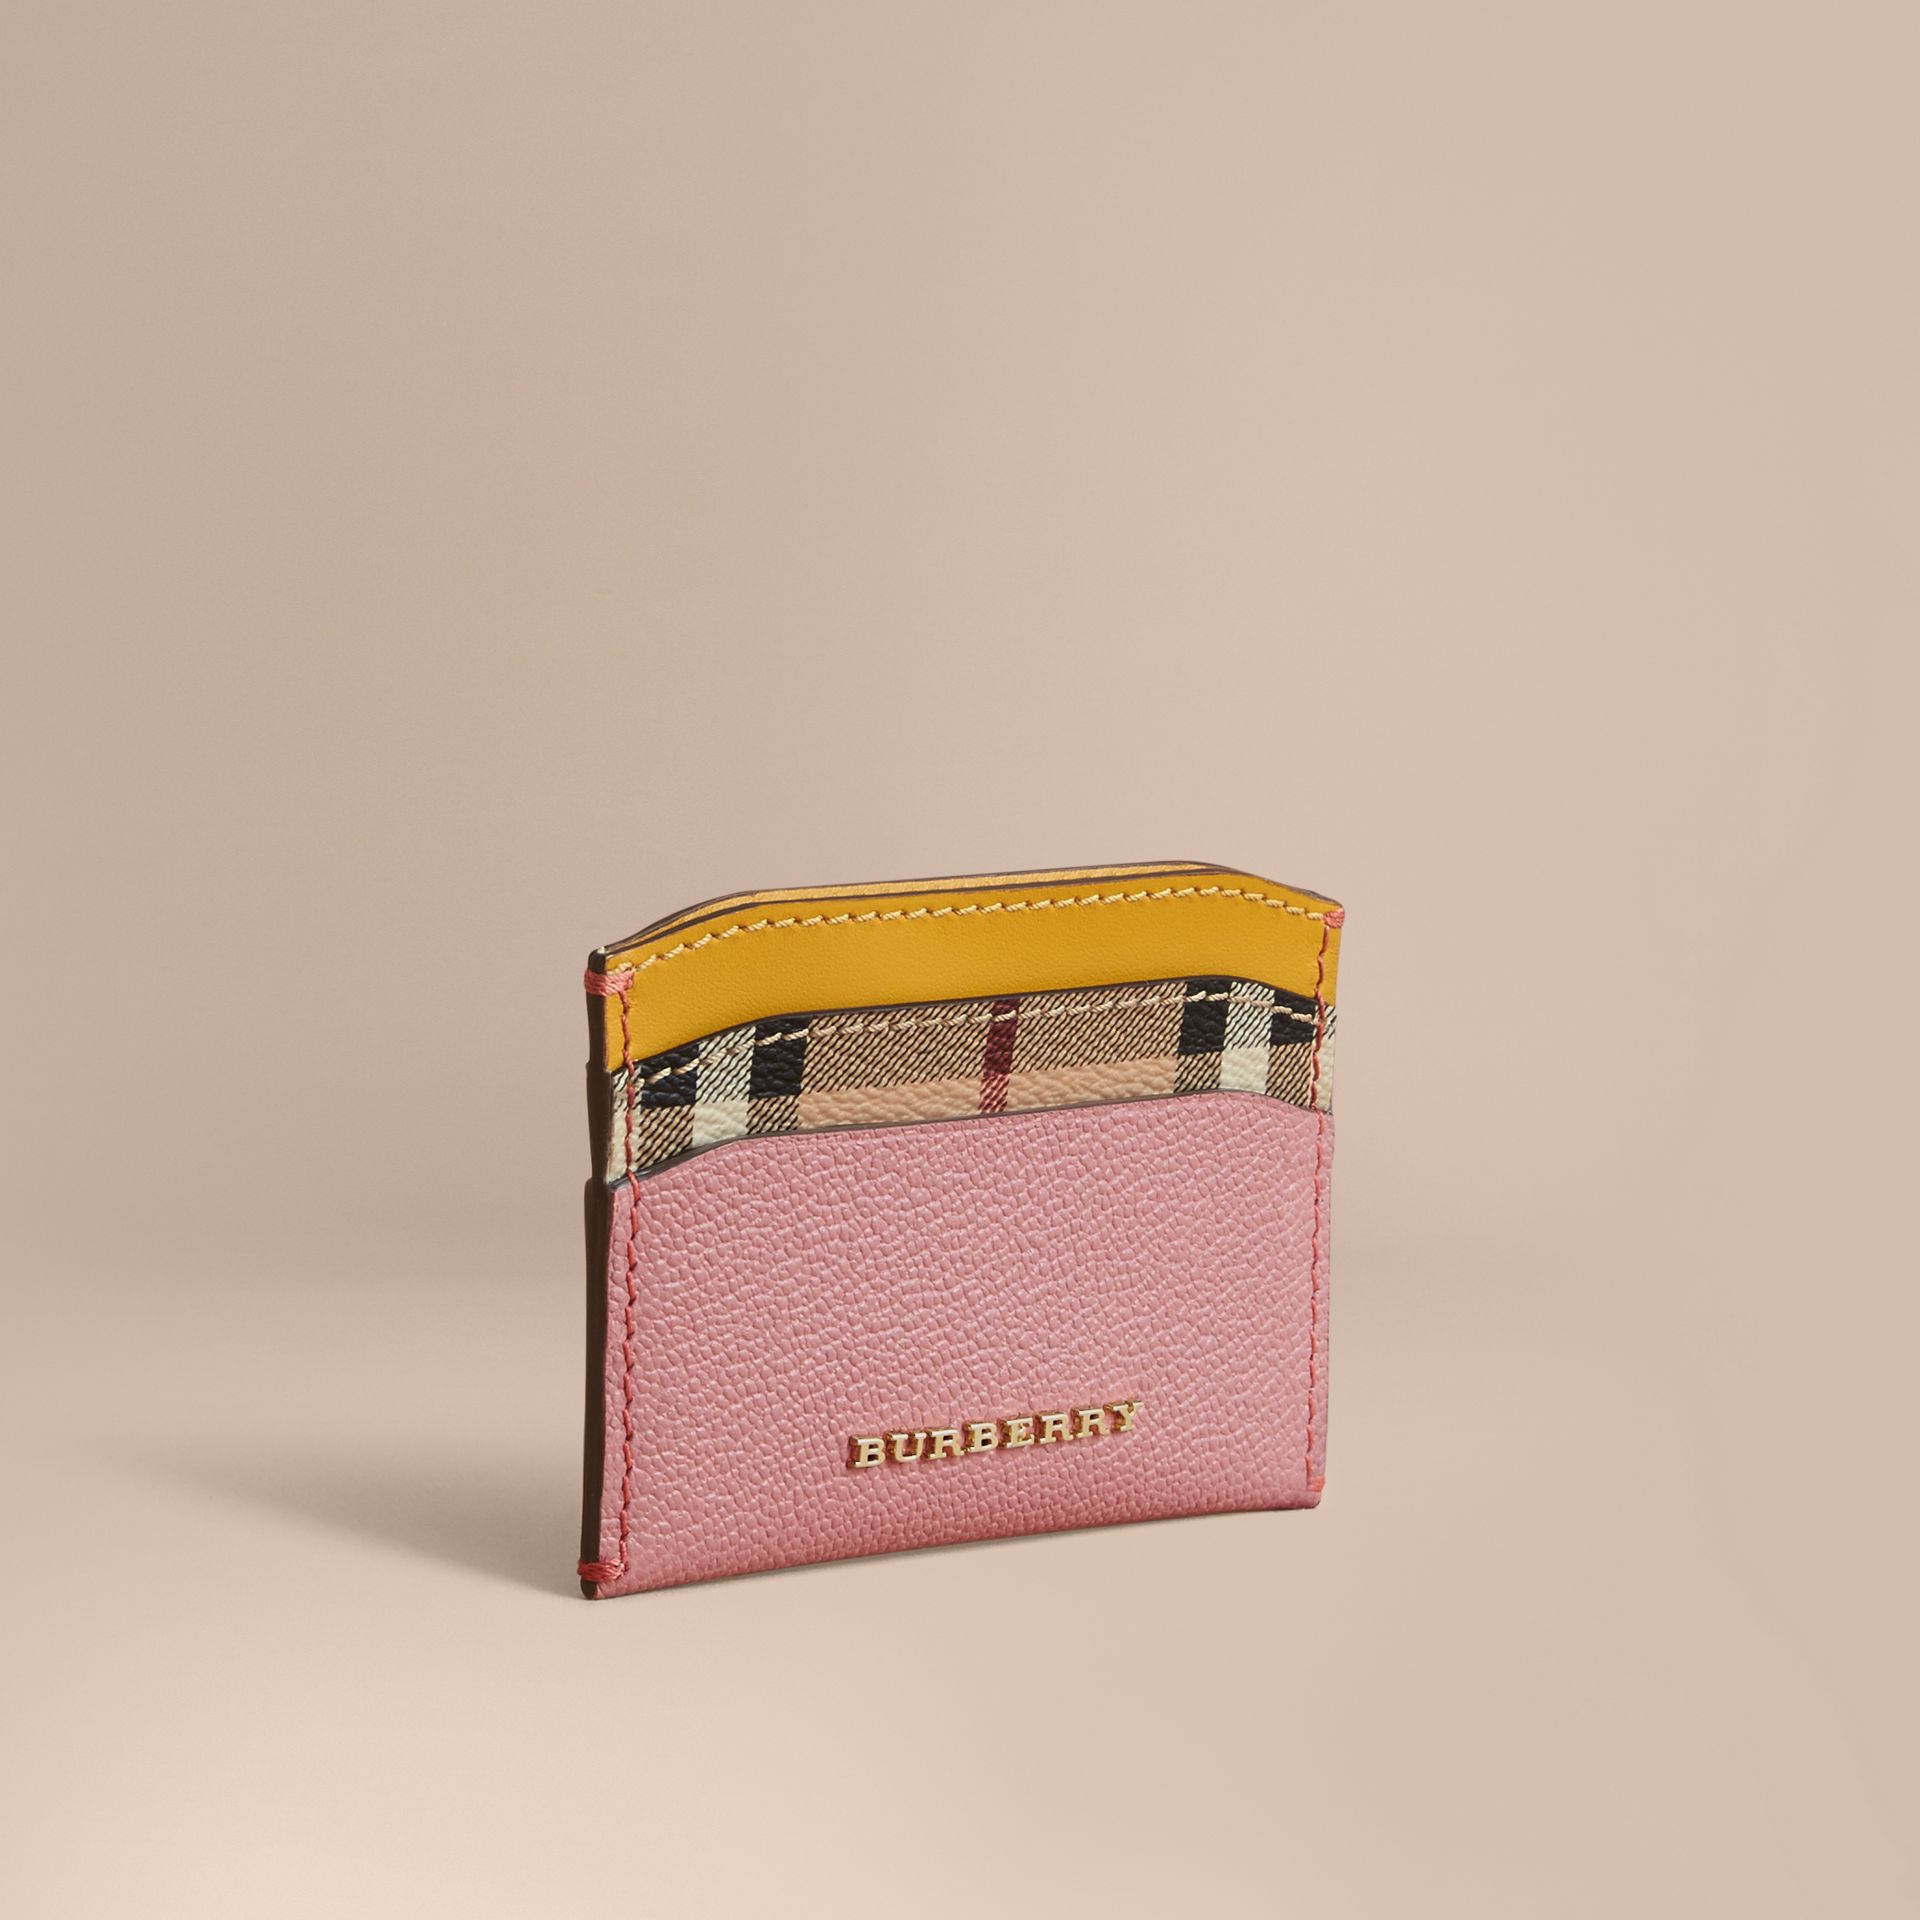 Colour Block Leather and Haymarket Check Card Case in Dusty Pink / Multi - Women | Burberry - gallery image 0